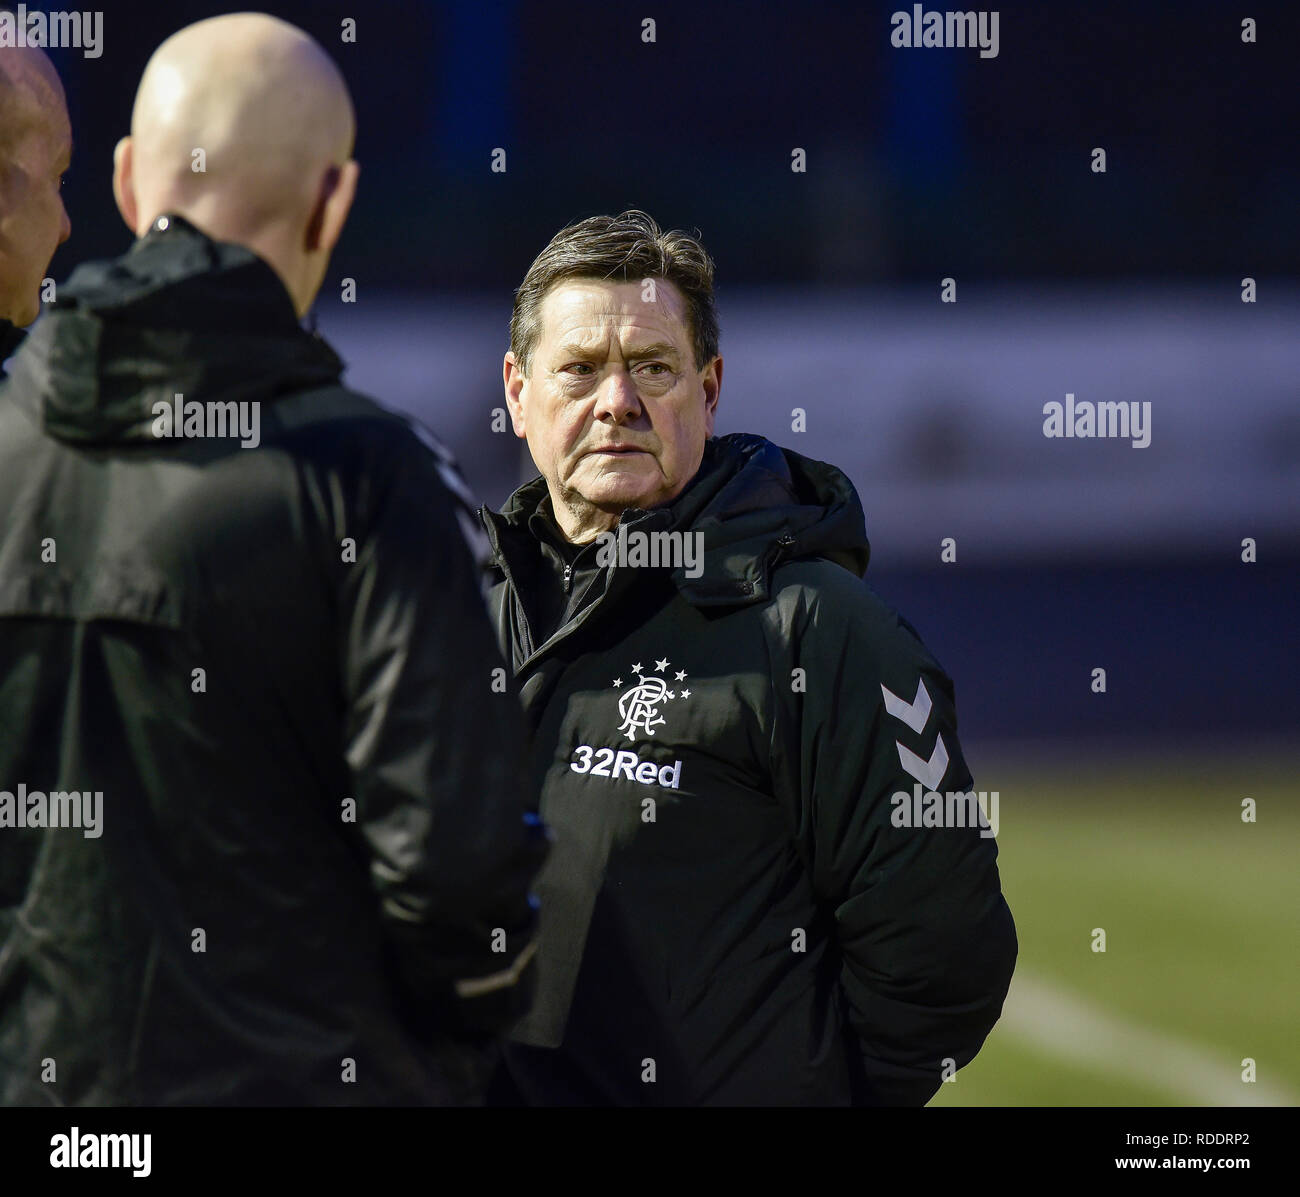 Cowdenbeath, Scotland, UK. Fourth round of the William Hill Scottish Cup match between Cowdenbeath and Glasgow Rangers postponed late on after a complaint by Rangers kit man about a frozen surface. Local referee Scott inspected the pitch and agreed. Pictured: Rangers kit man Jimmy Bell. Credit: Dave Johnston/Alamy Live News - Stock Image